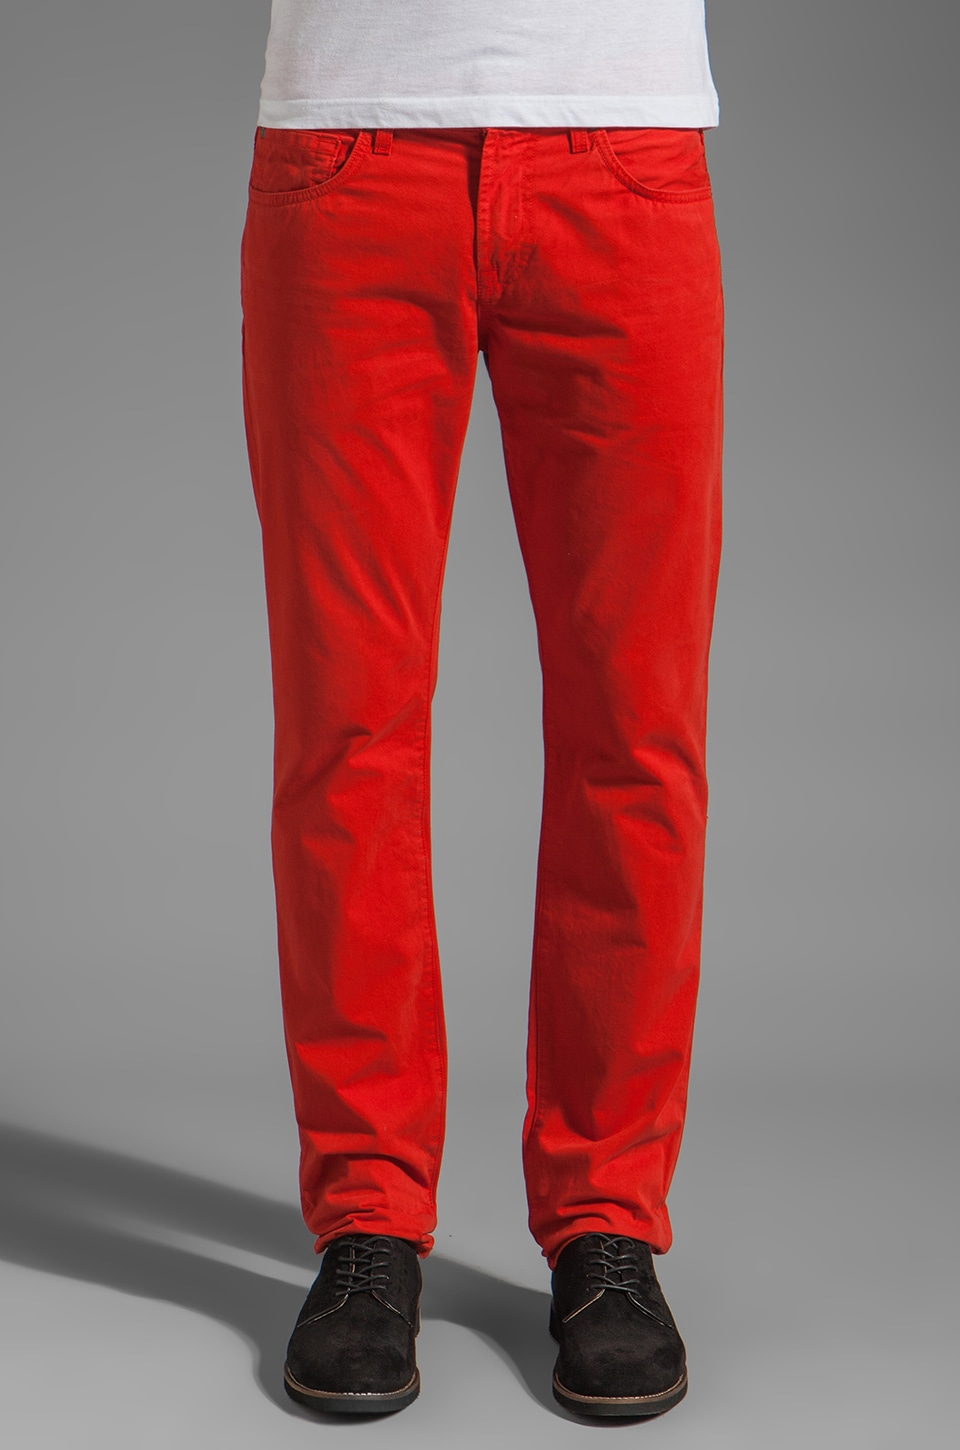 7 For All Mankind The Straight Leg in Passion Red